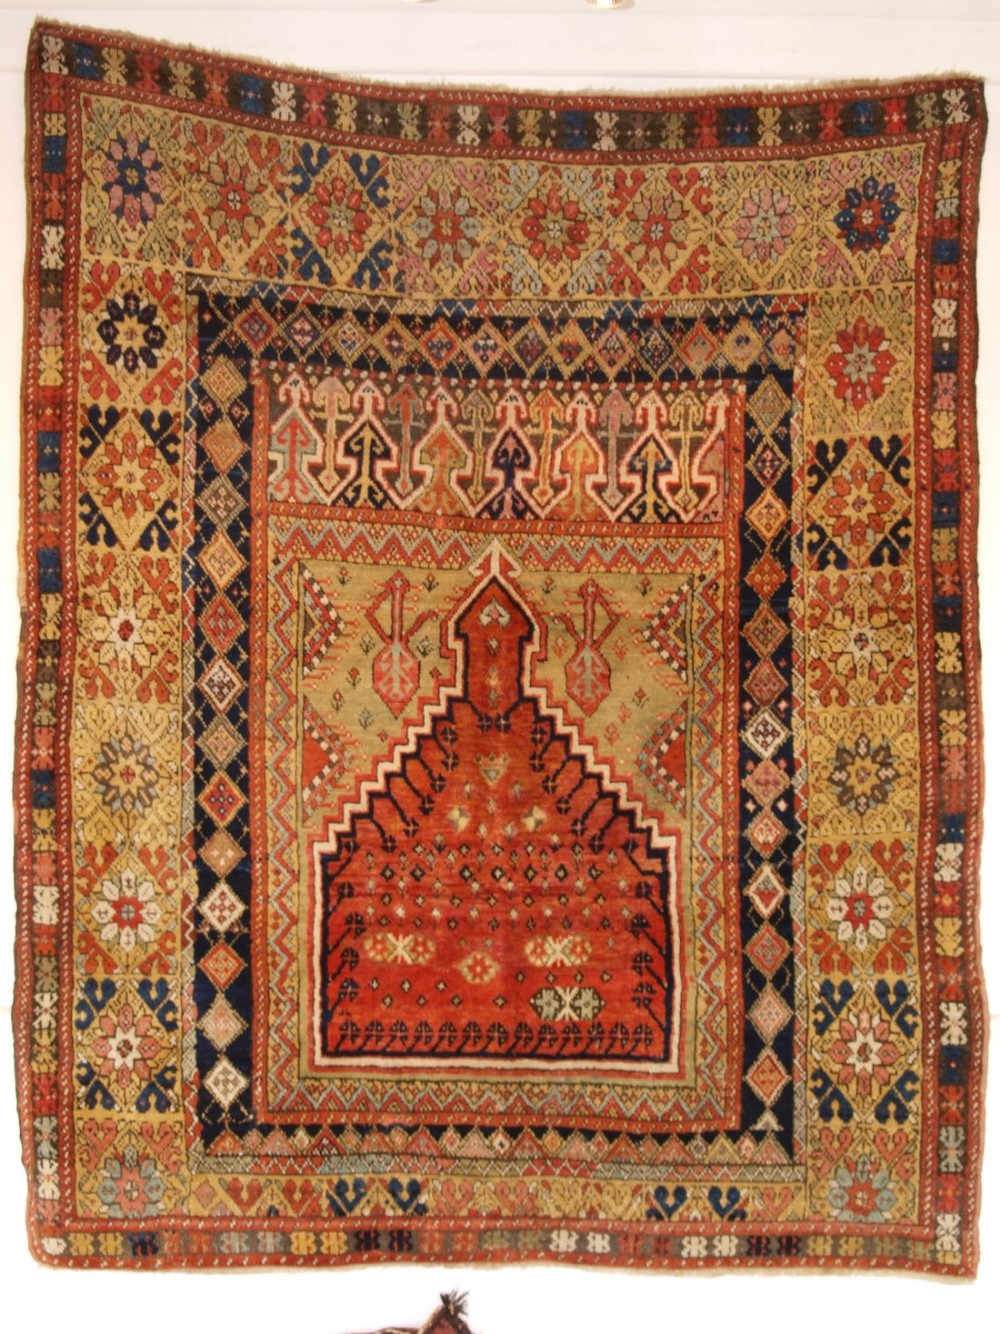 antique turkish mujur prayer rug superb colours central anatolia mid19th century